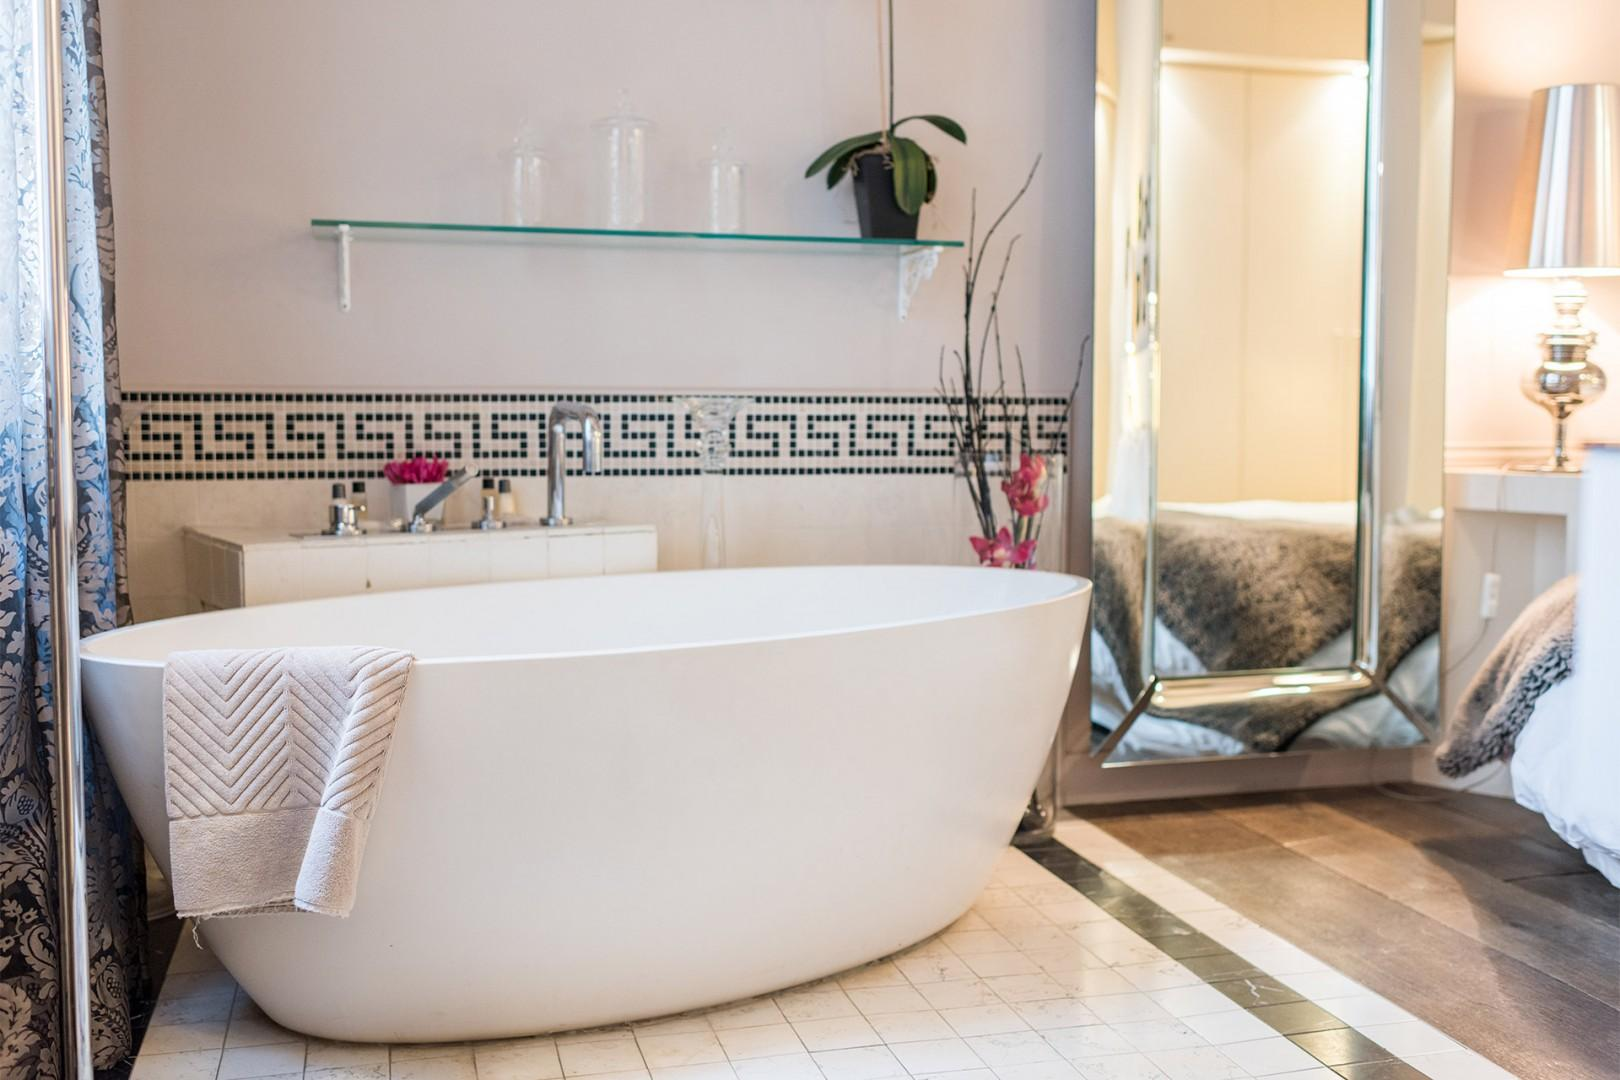 Spoil yourself with a relaxing bath after a long day exploring Paris.